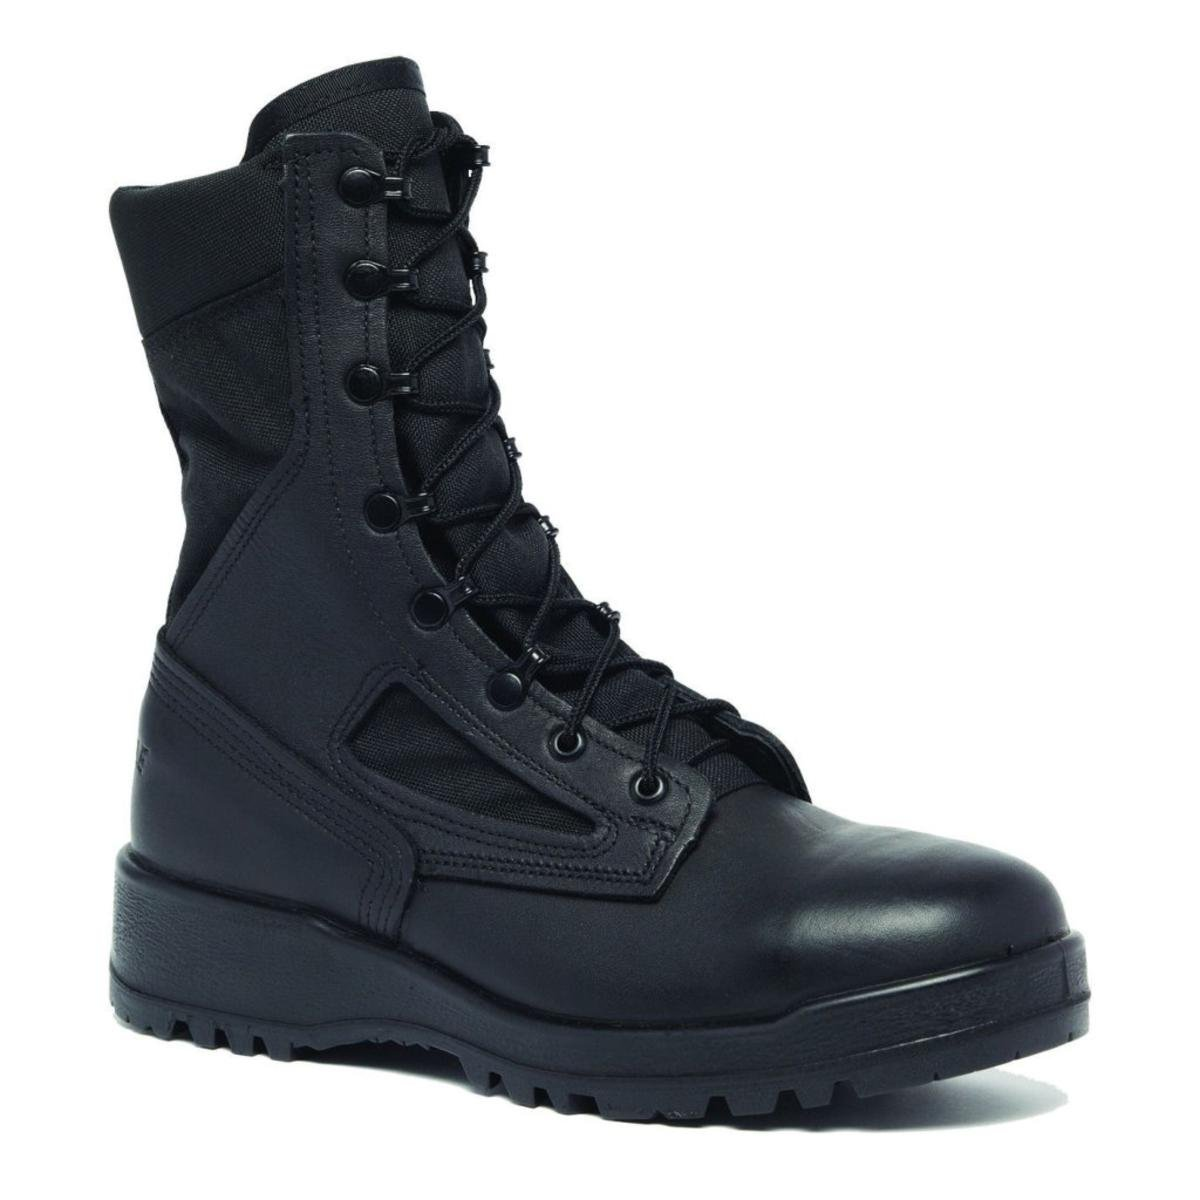 Belleville Men's Hot Weather Combat Boot B01EXA1JZ2 6.5 2E US|Black